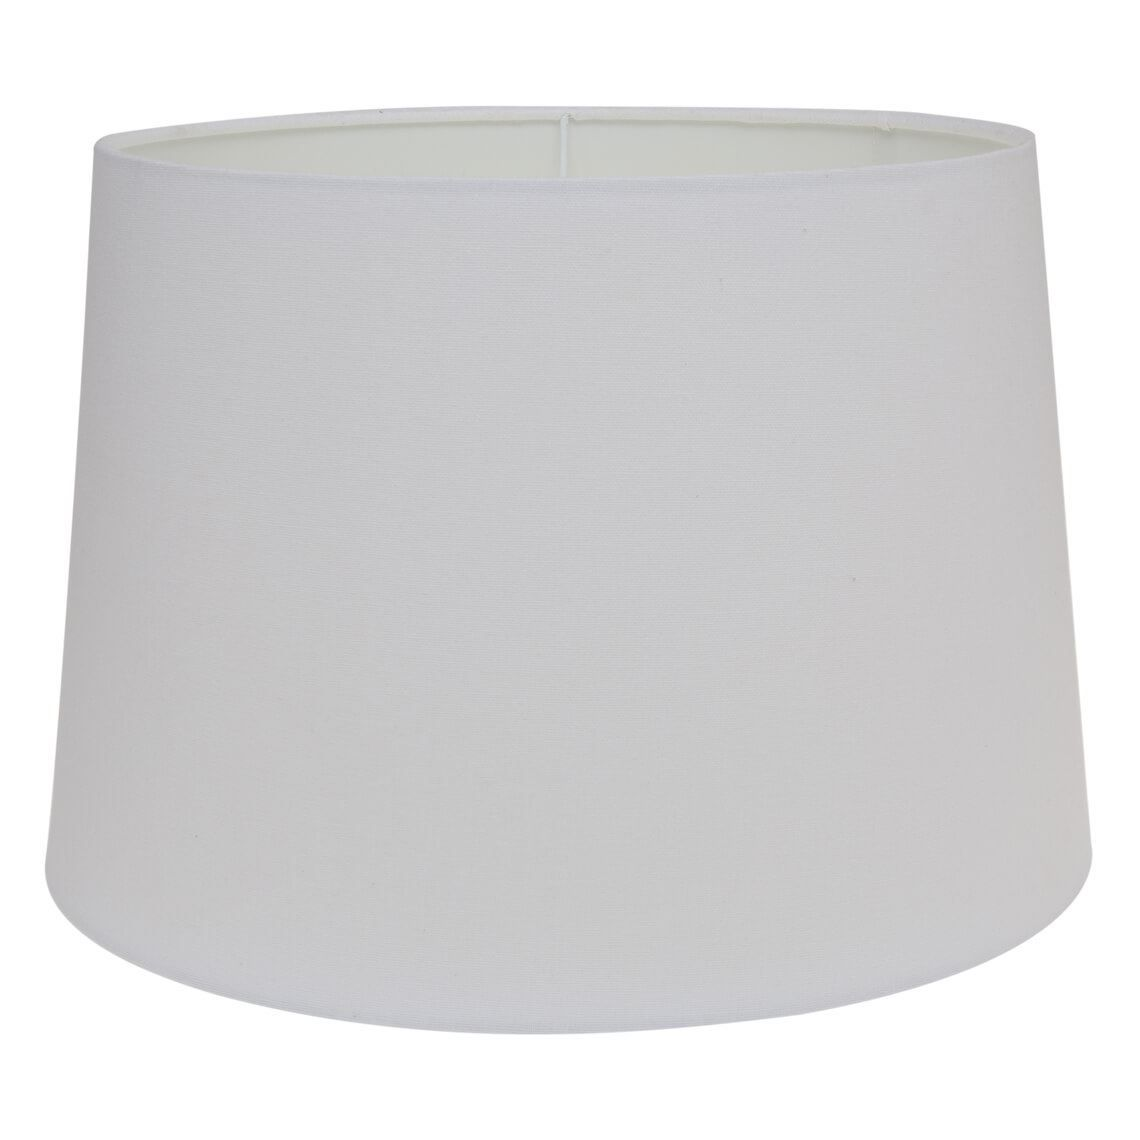 Moon 30x20cm Tapered Lamp Shade White Shades Ceiling Fixtures